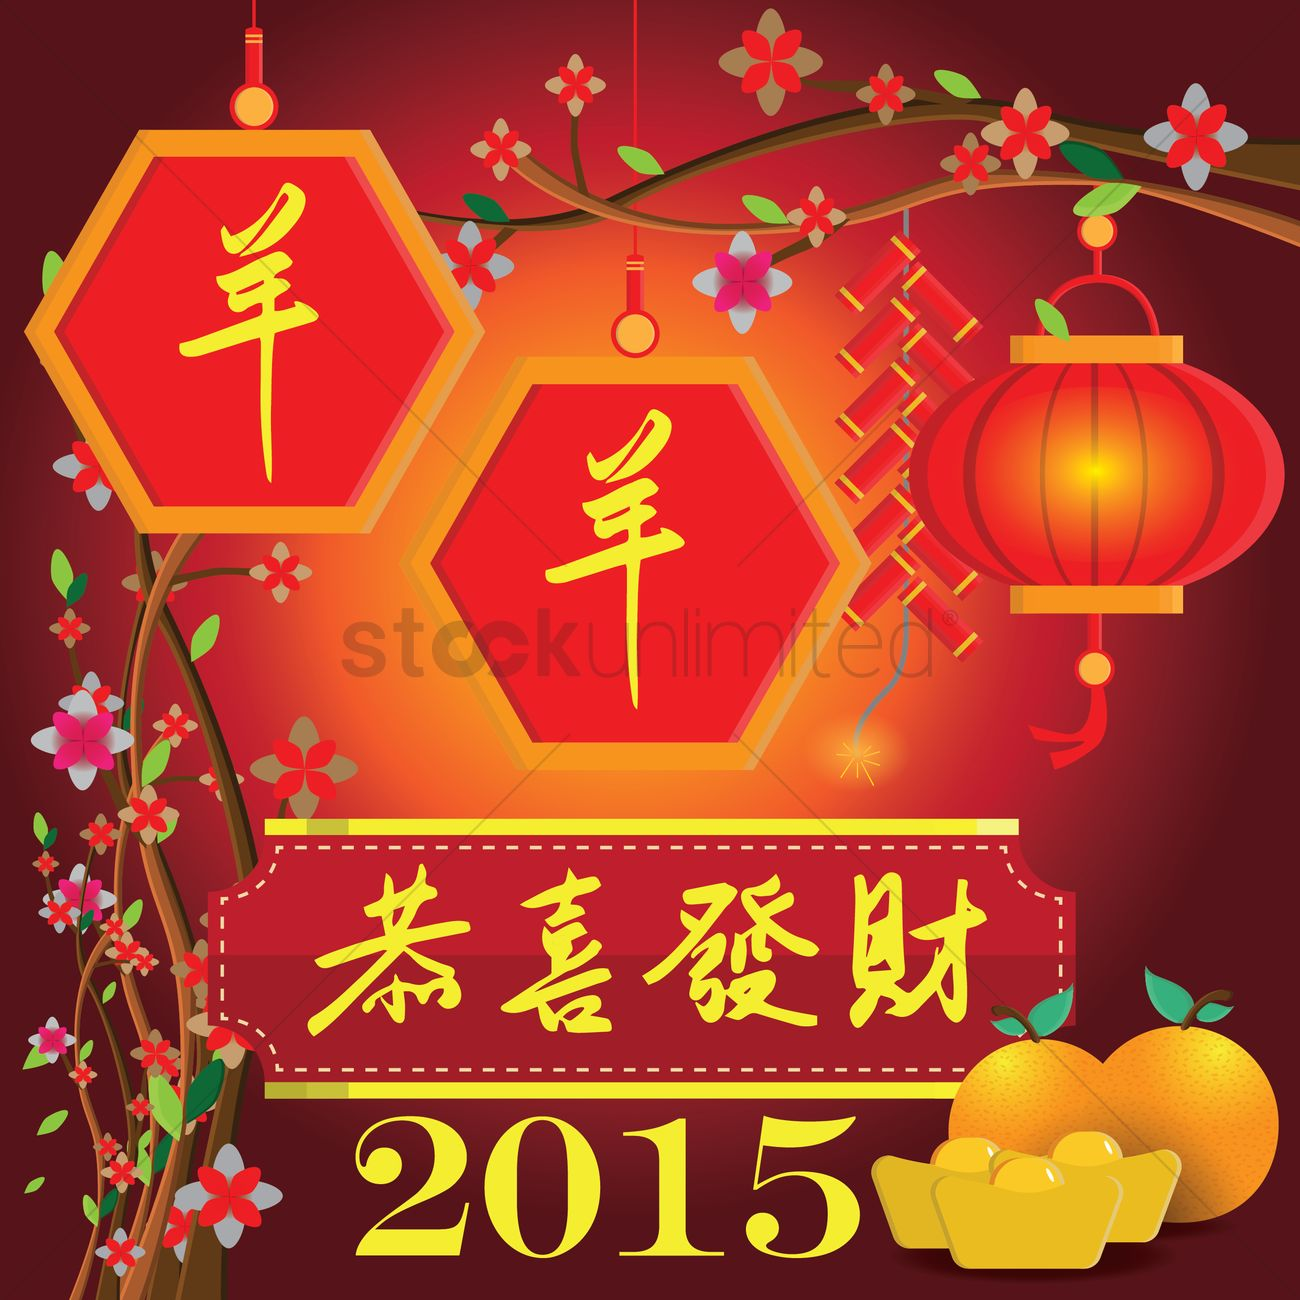 Chinese New Year Greeting For The Goat Year Vector Image 1345740